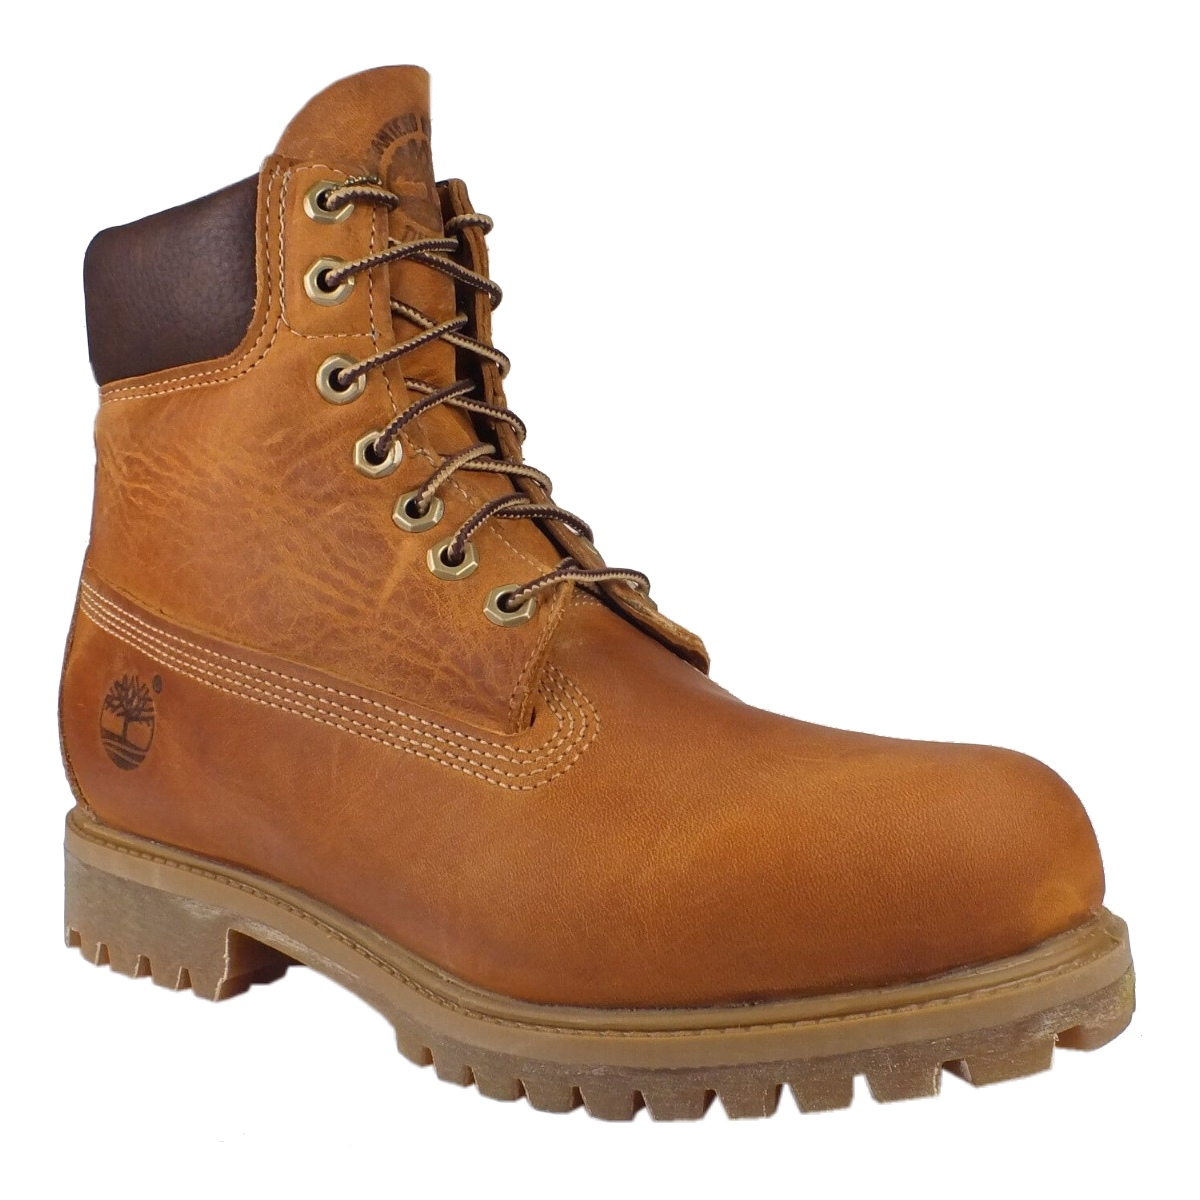 timberland heritage classic 6 inch premium waterproof boots shoes men ebay. Black Bedroom Furniture Sets. Home Design Ideas